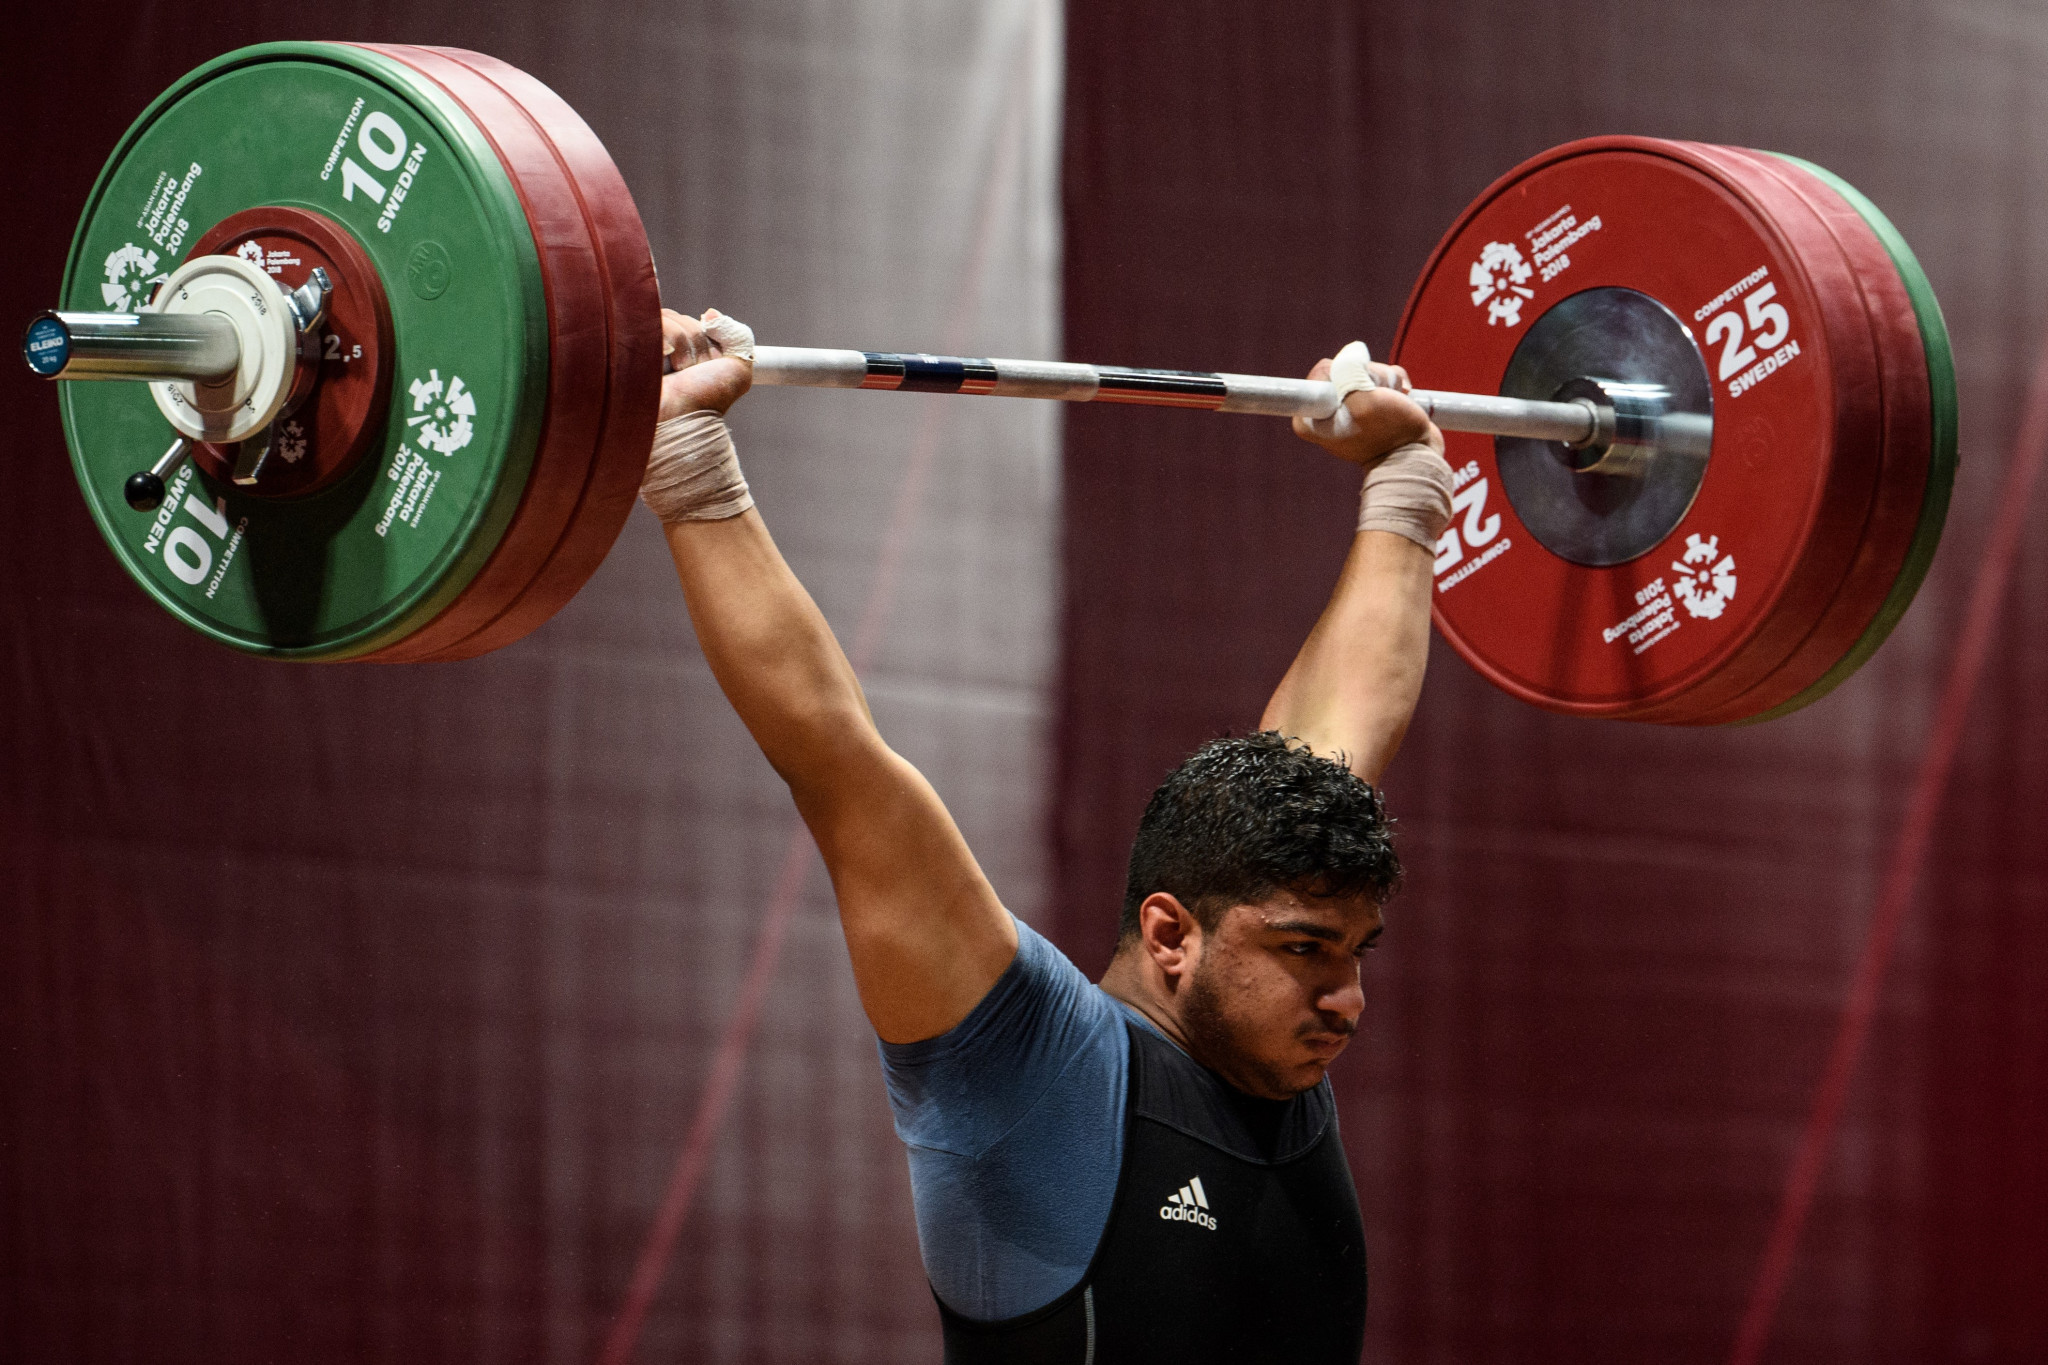 Ali Yousef Alothman won the men's overall title at 89kg ©Getty Images